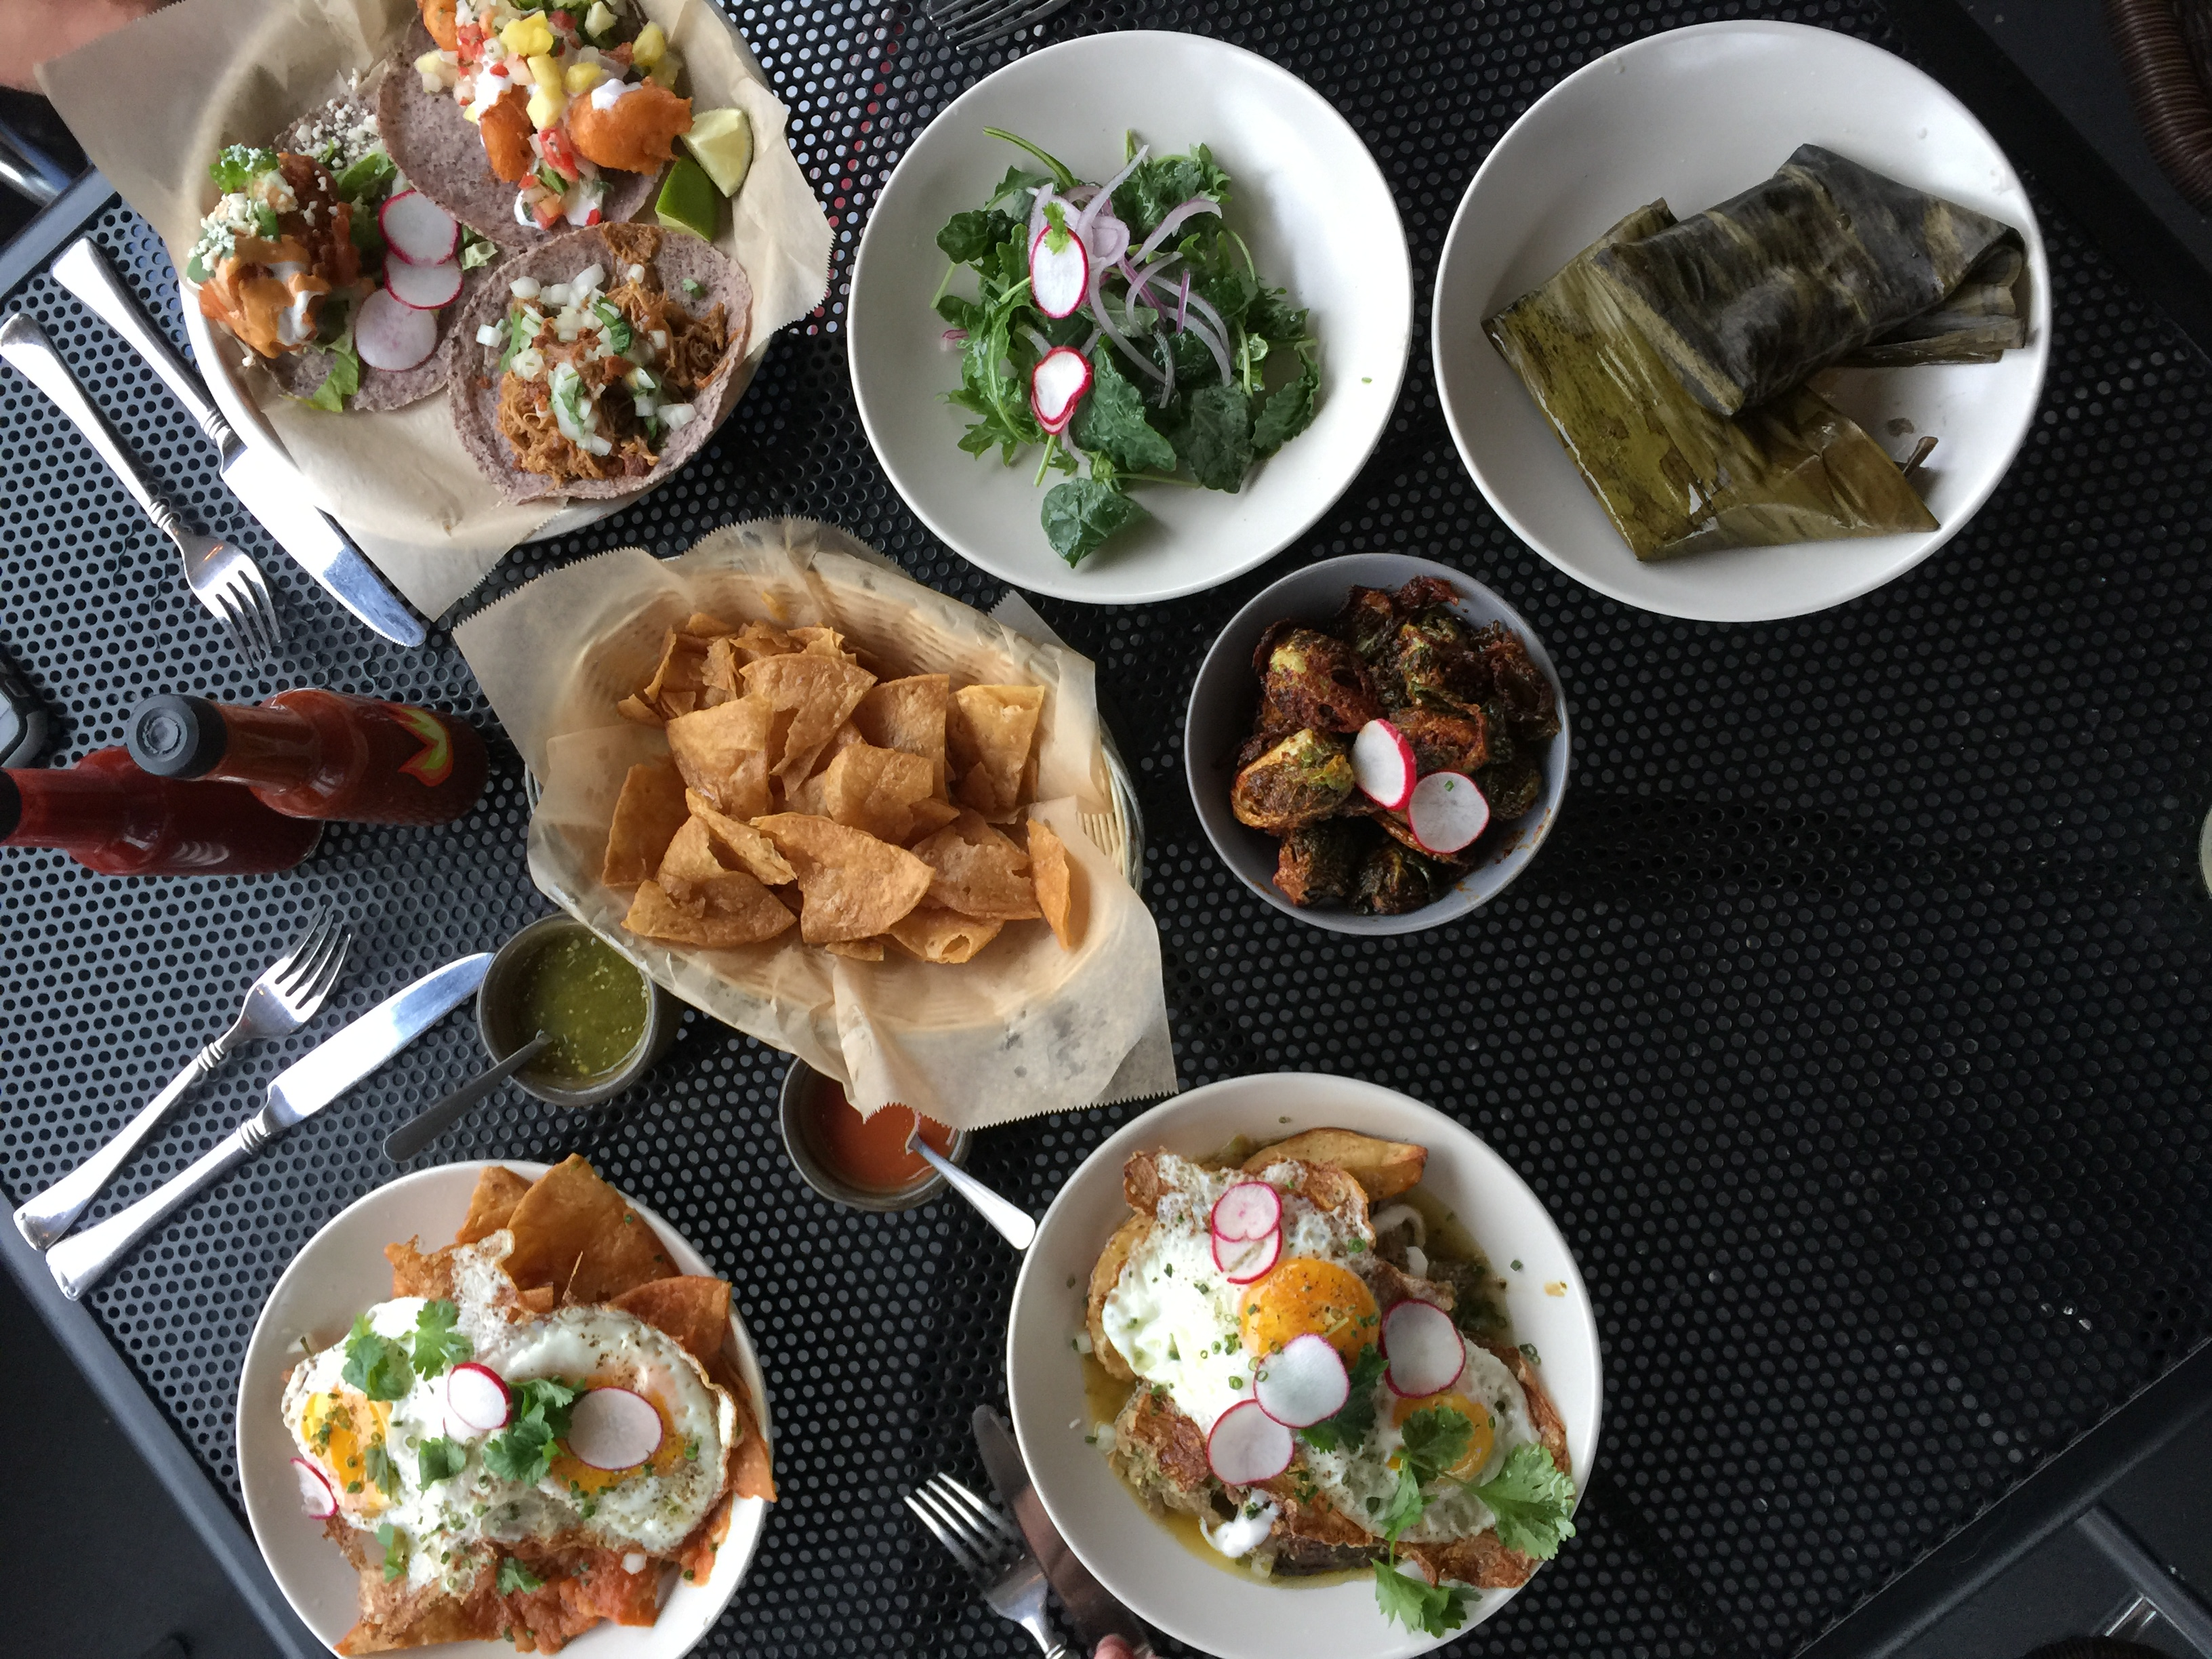 Brunch at Bajo Sexto Taco Lounge from Spinach Tiger